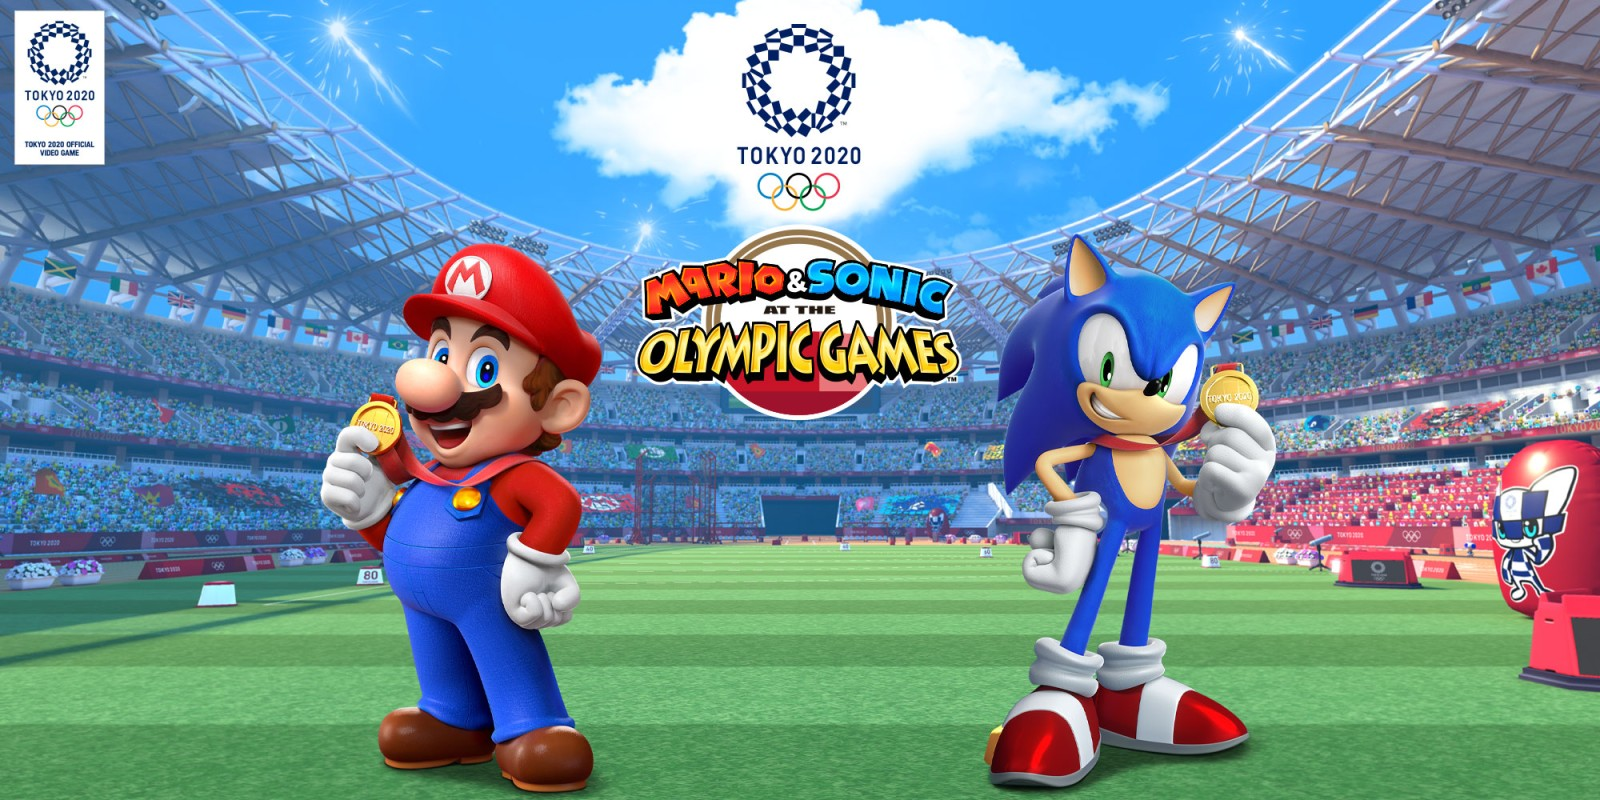 Last Game You Finished And Your Four-ghts - Page 6 H2x1_NSwitch_MarioAndSonicAtTheOlympicGamesTokyo2020_enGB_image1600w